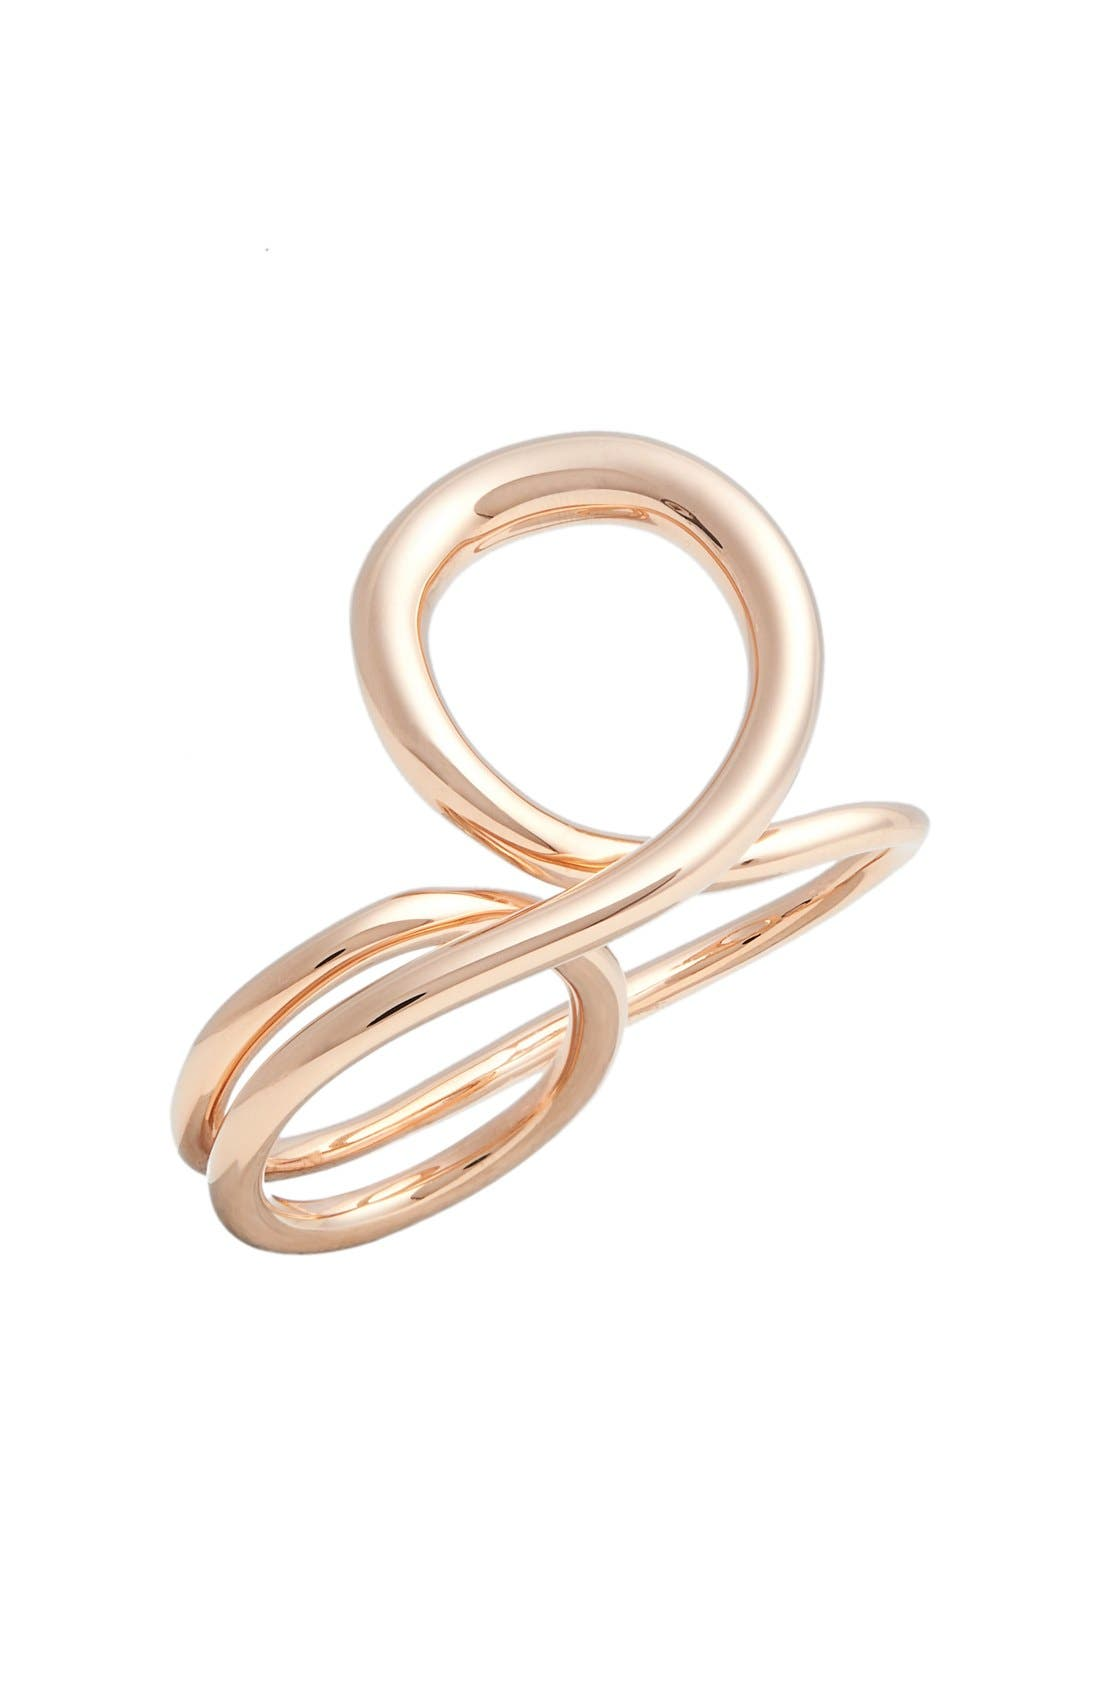 abab207d81f8 Women s Rings Sale